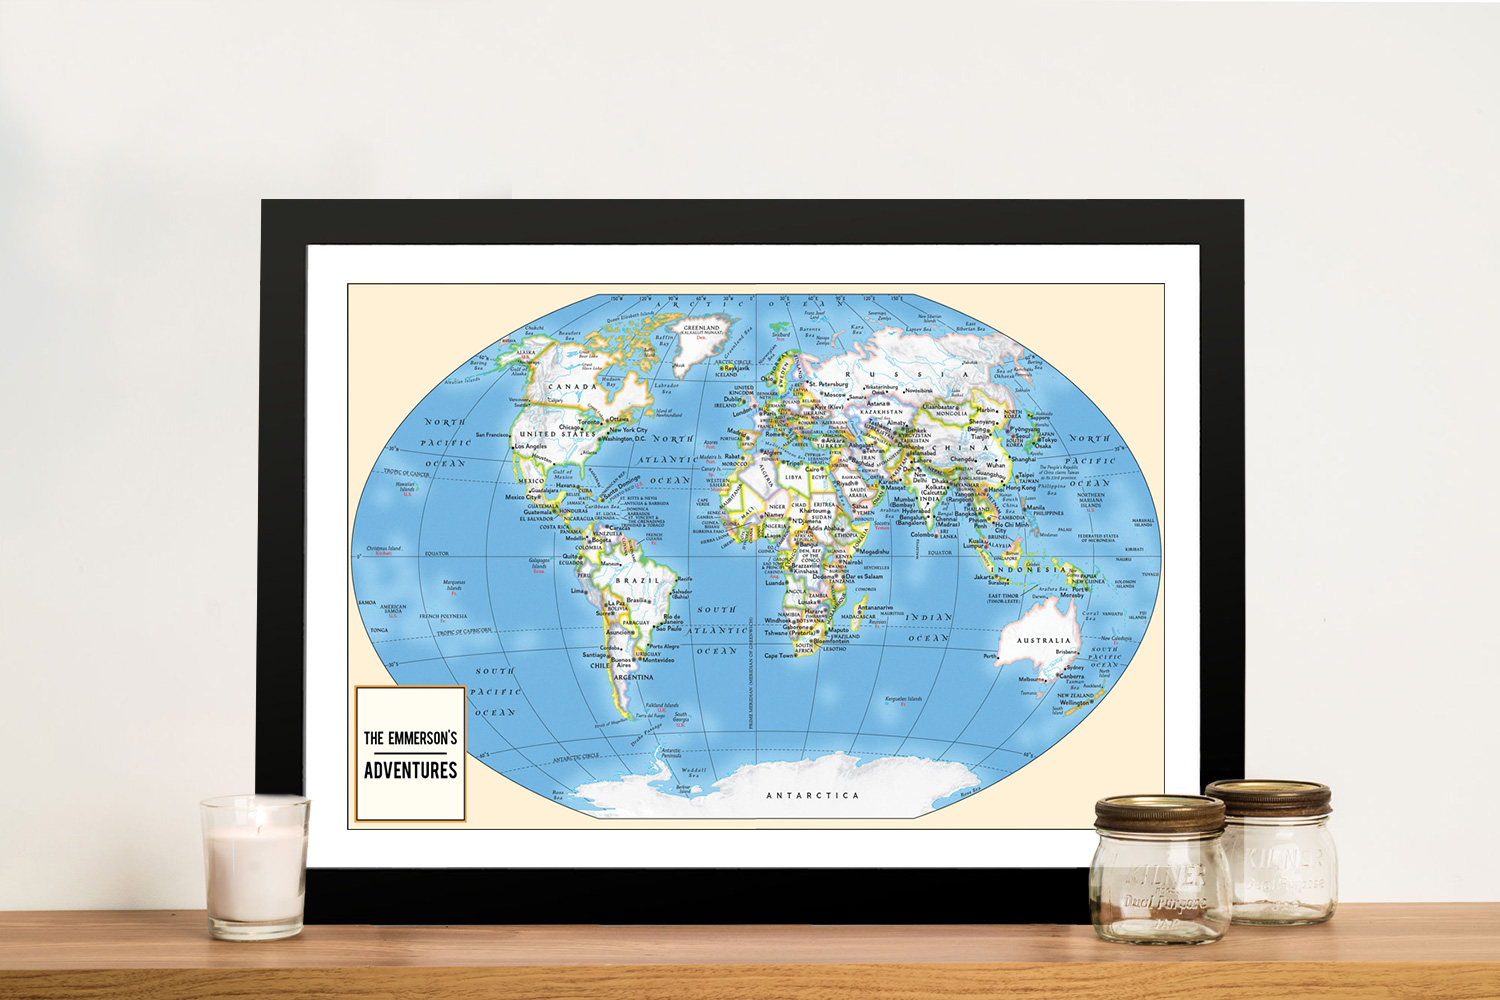 Adventurer Push Pin World Map Framed Art | Push Pin World Map – Adventurer